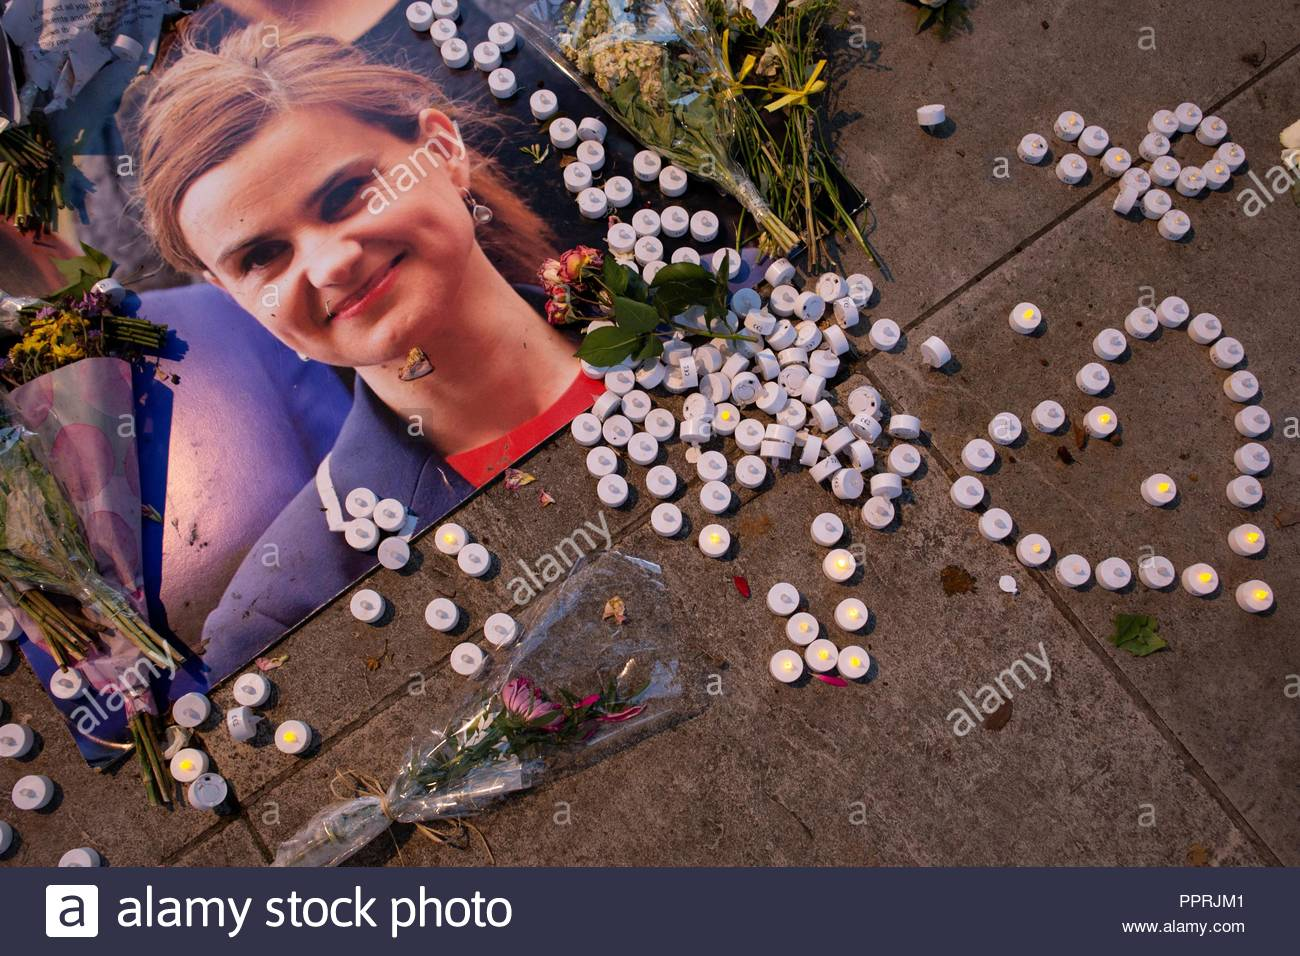 Part of the vigil set up to murdered MP Jo Cox at Westminster in 2016 - Stock Image